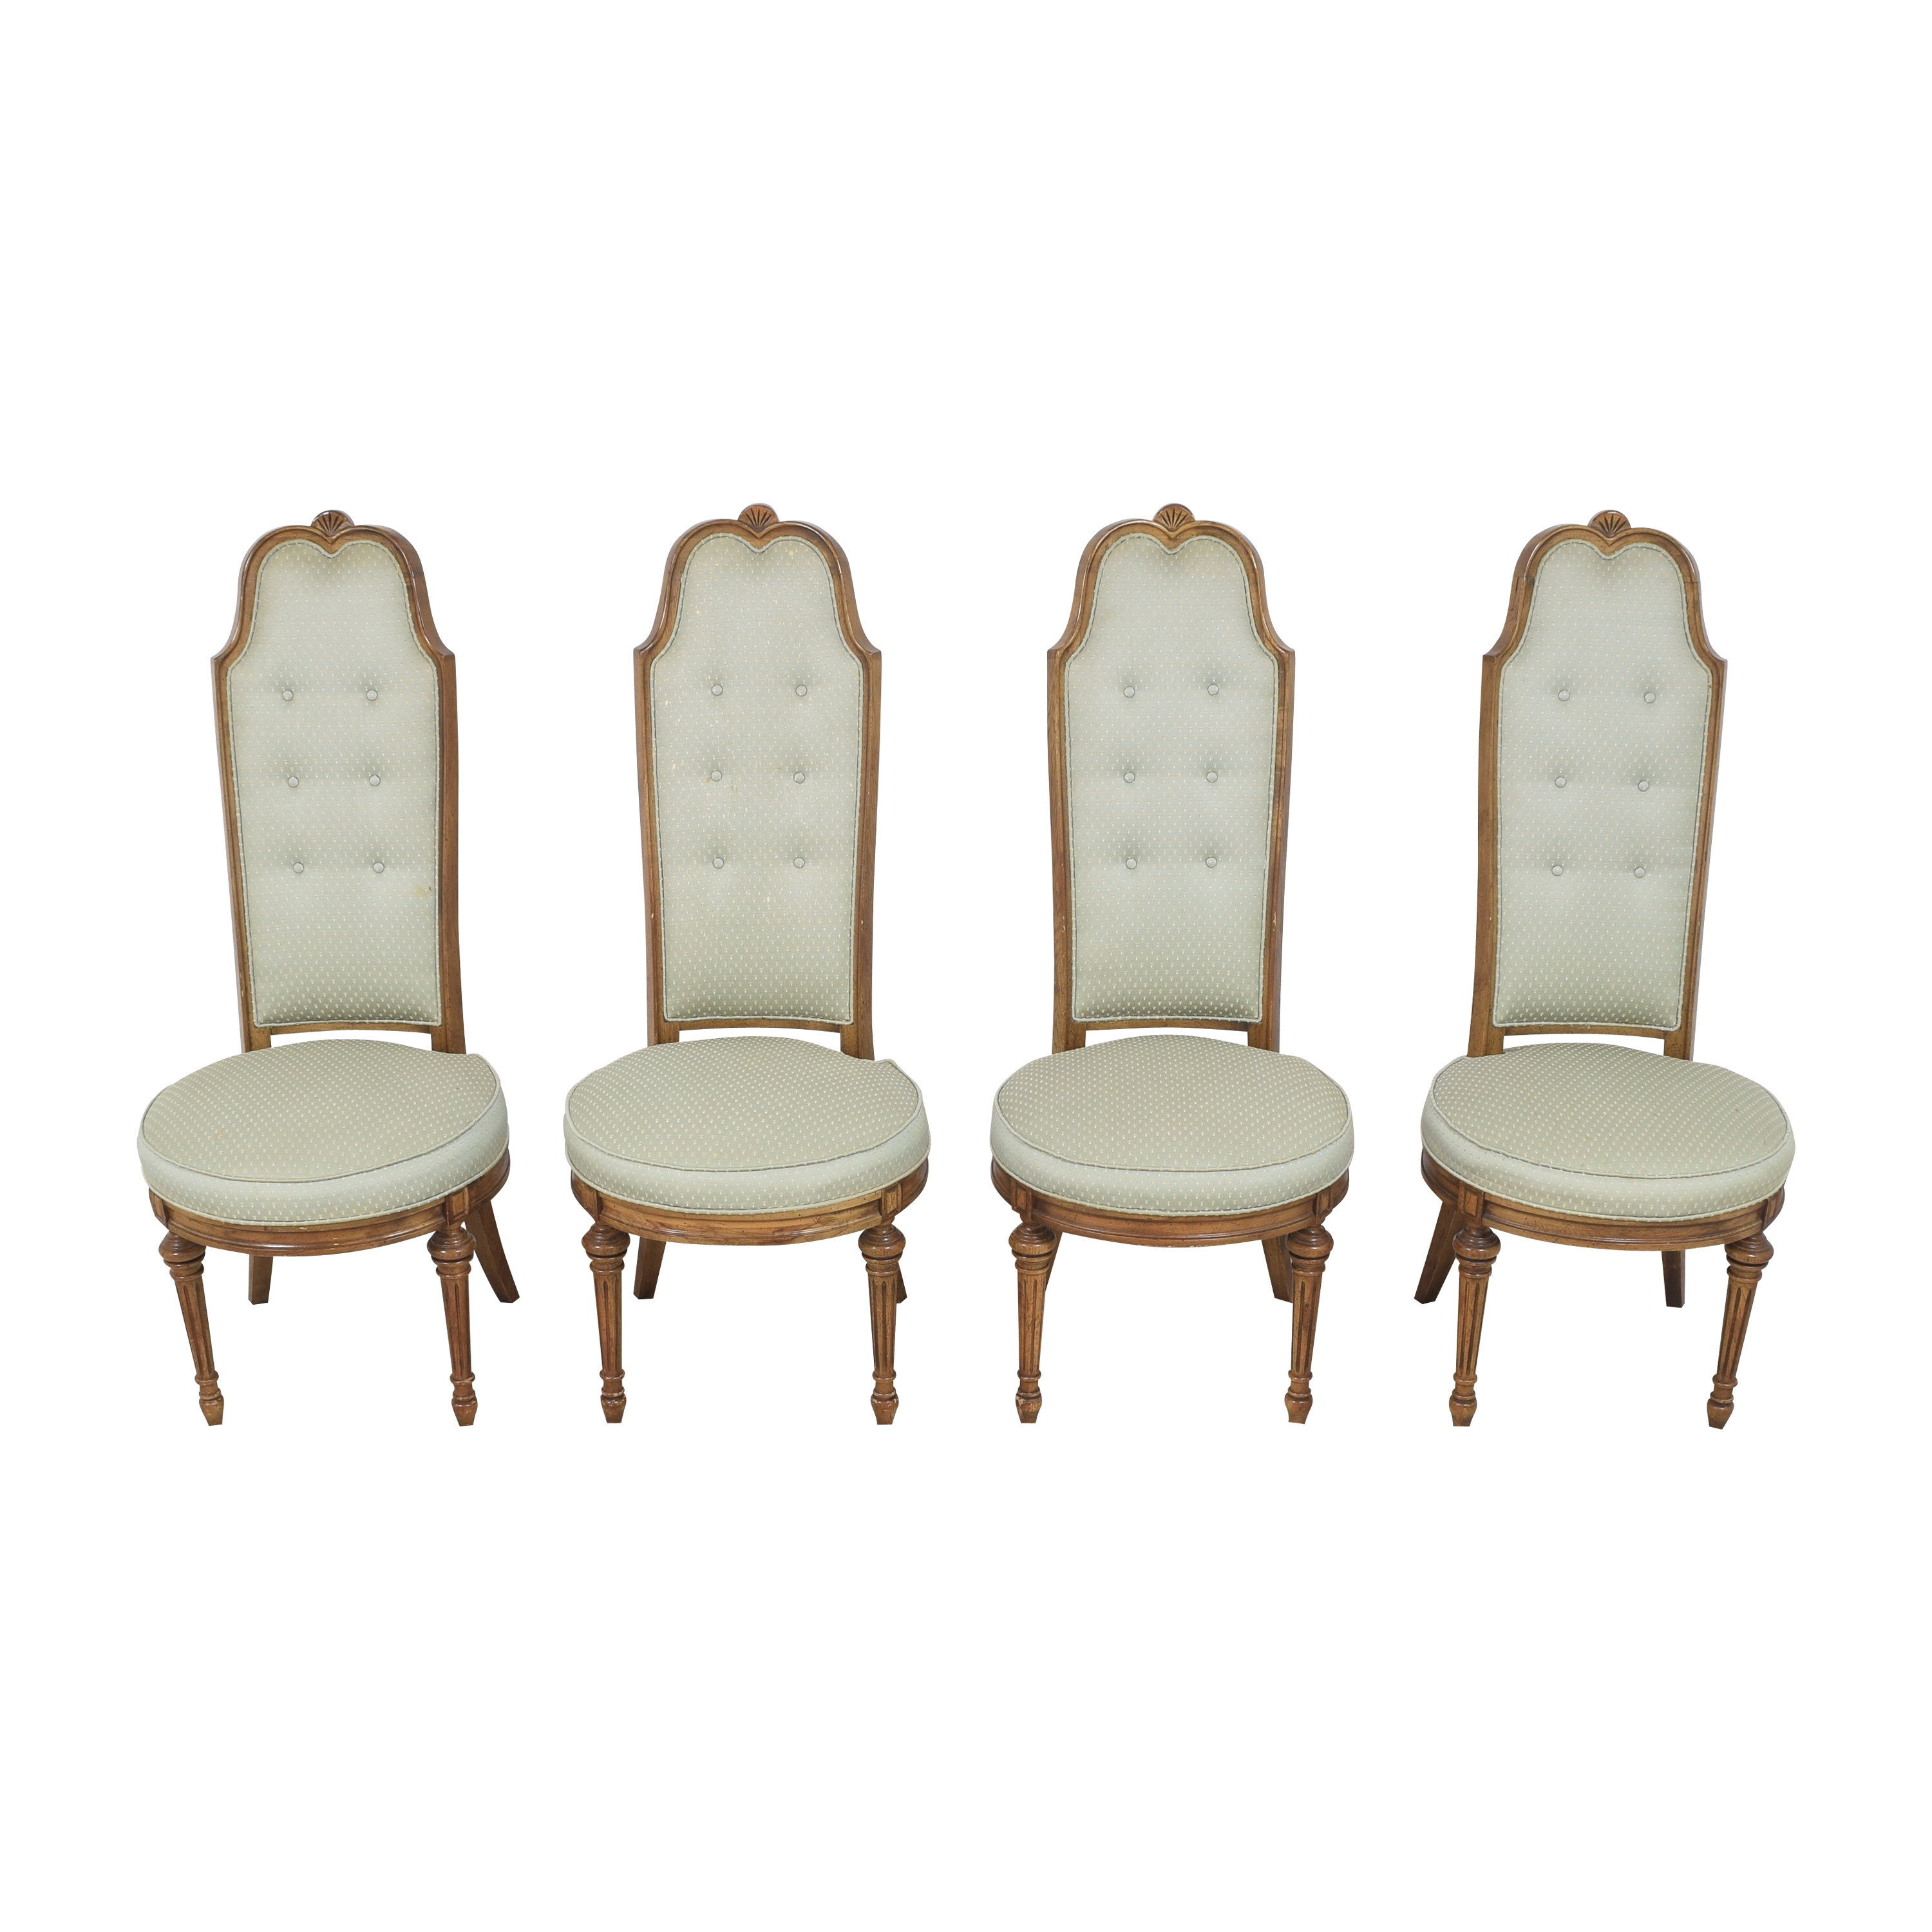 High Back Tufted Dining Chairs  ct